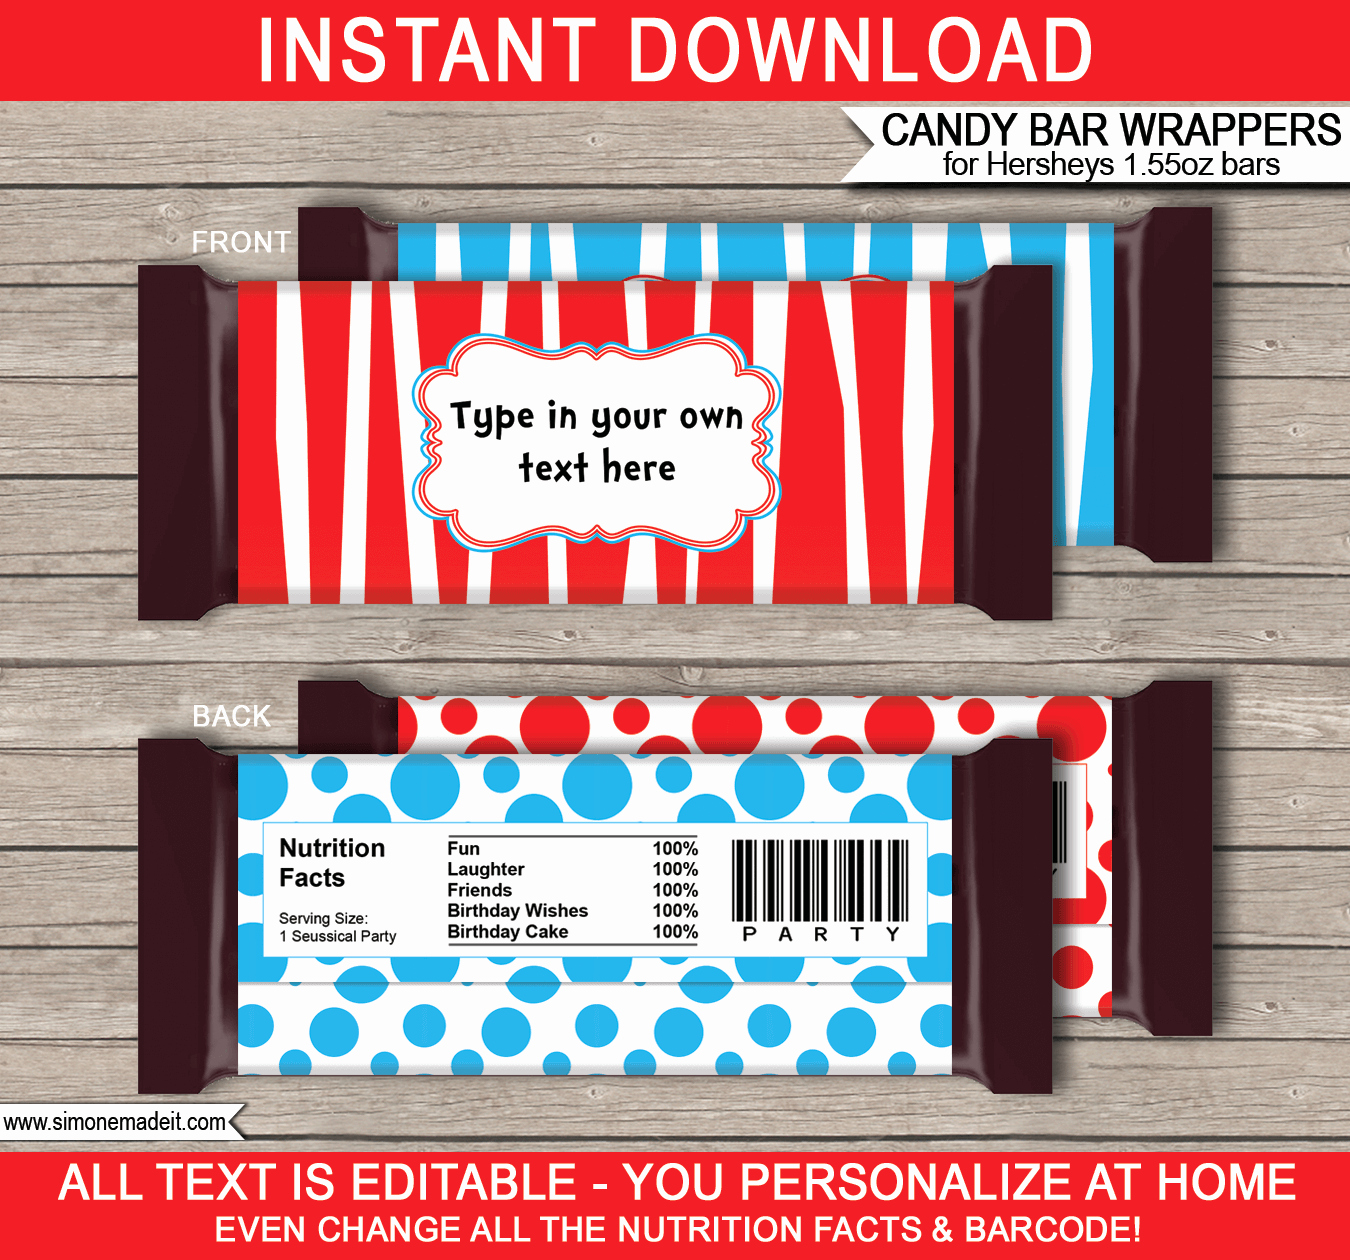 Chocolate Bar Wrapper Template Fresh Dr Seuss Hershey Candy Bar Wrappers